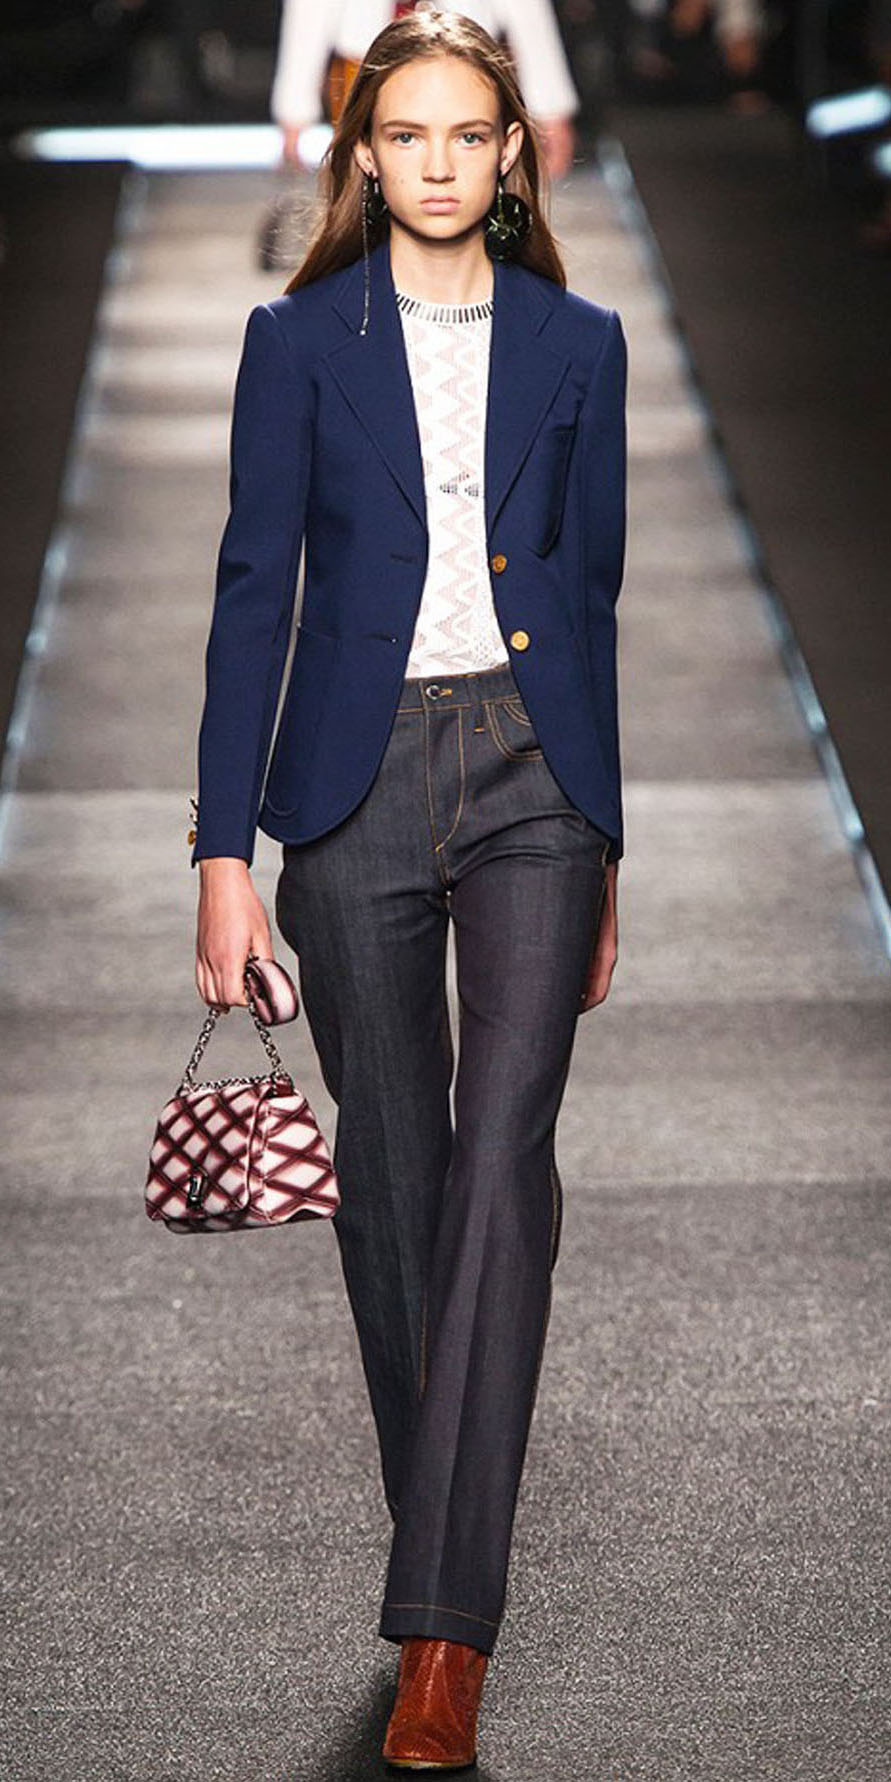 blue-navy-flare-jeans-white-top-blue-navy-jacket-blazer-cognac-shoe-booties-earrings-red-bag-wear-fashion-style-spring-summer-hairr-work.jpg